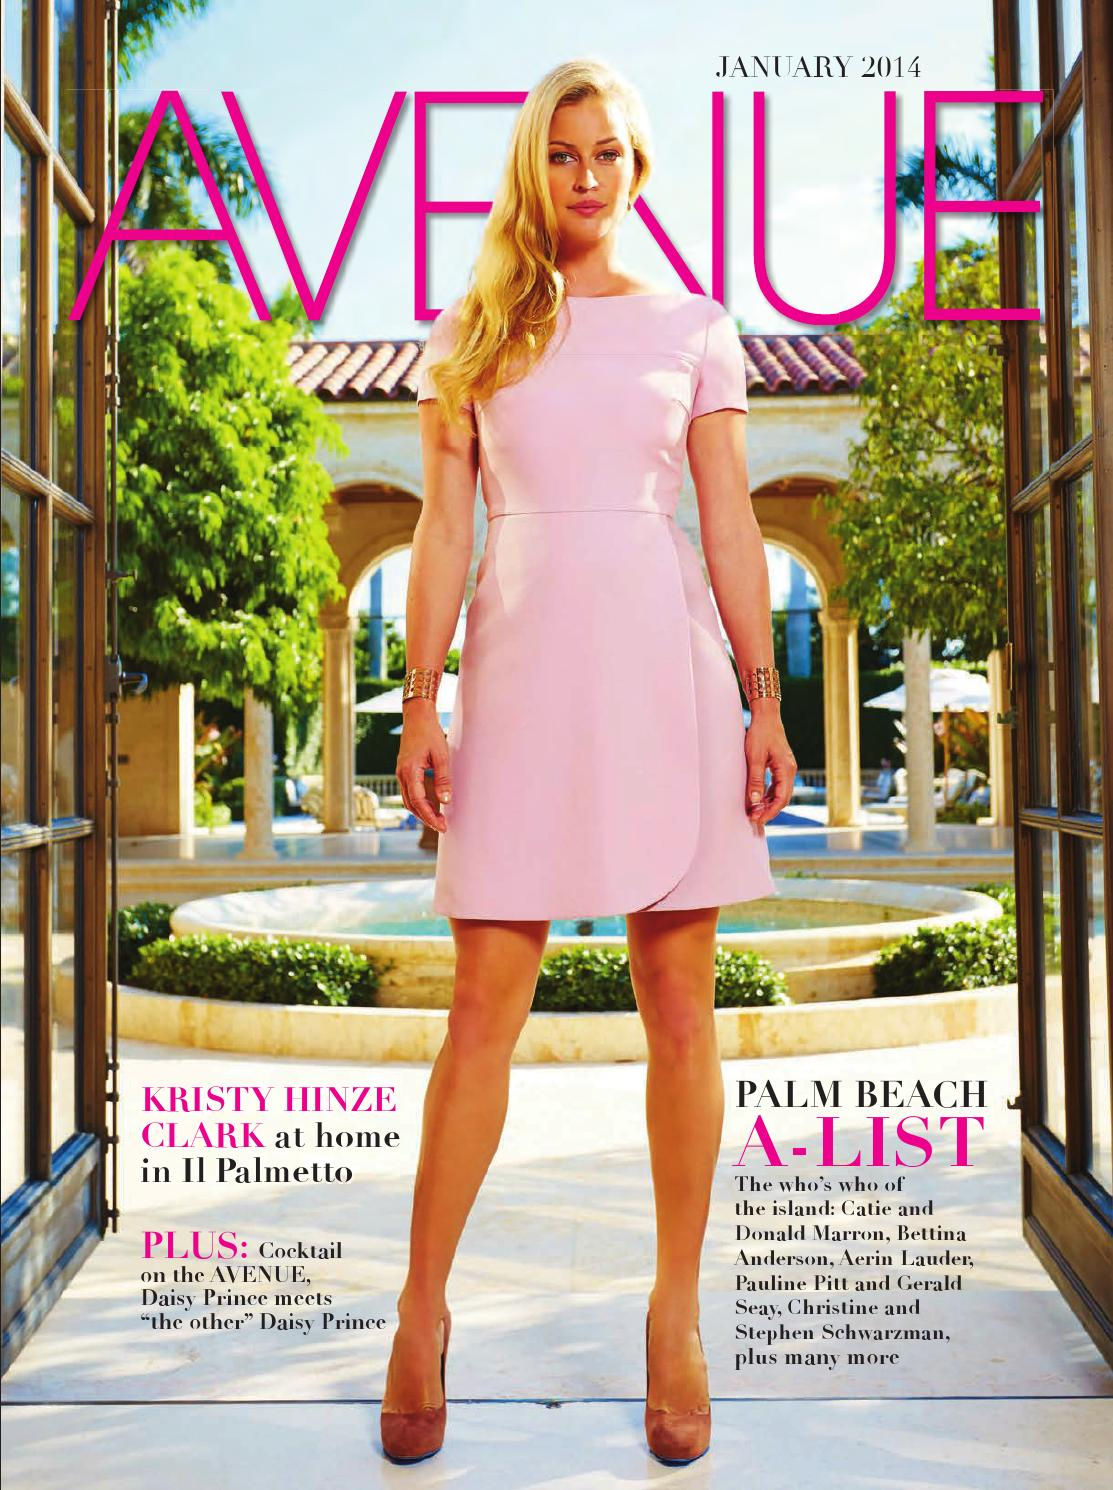 Avenue January 2014 by Manhattan Media - issuu